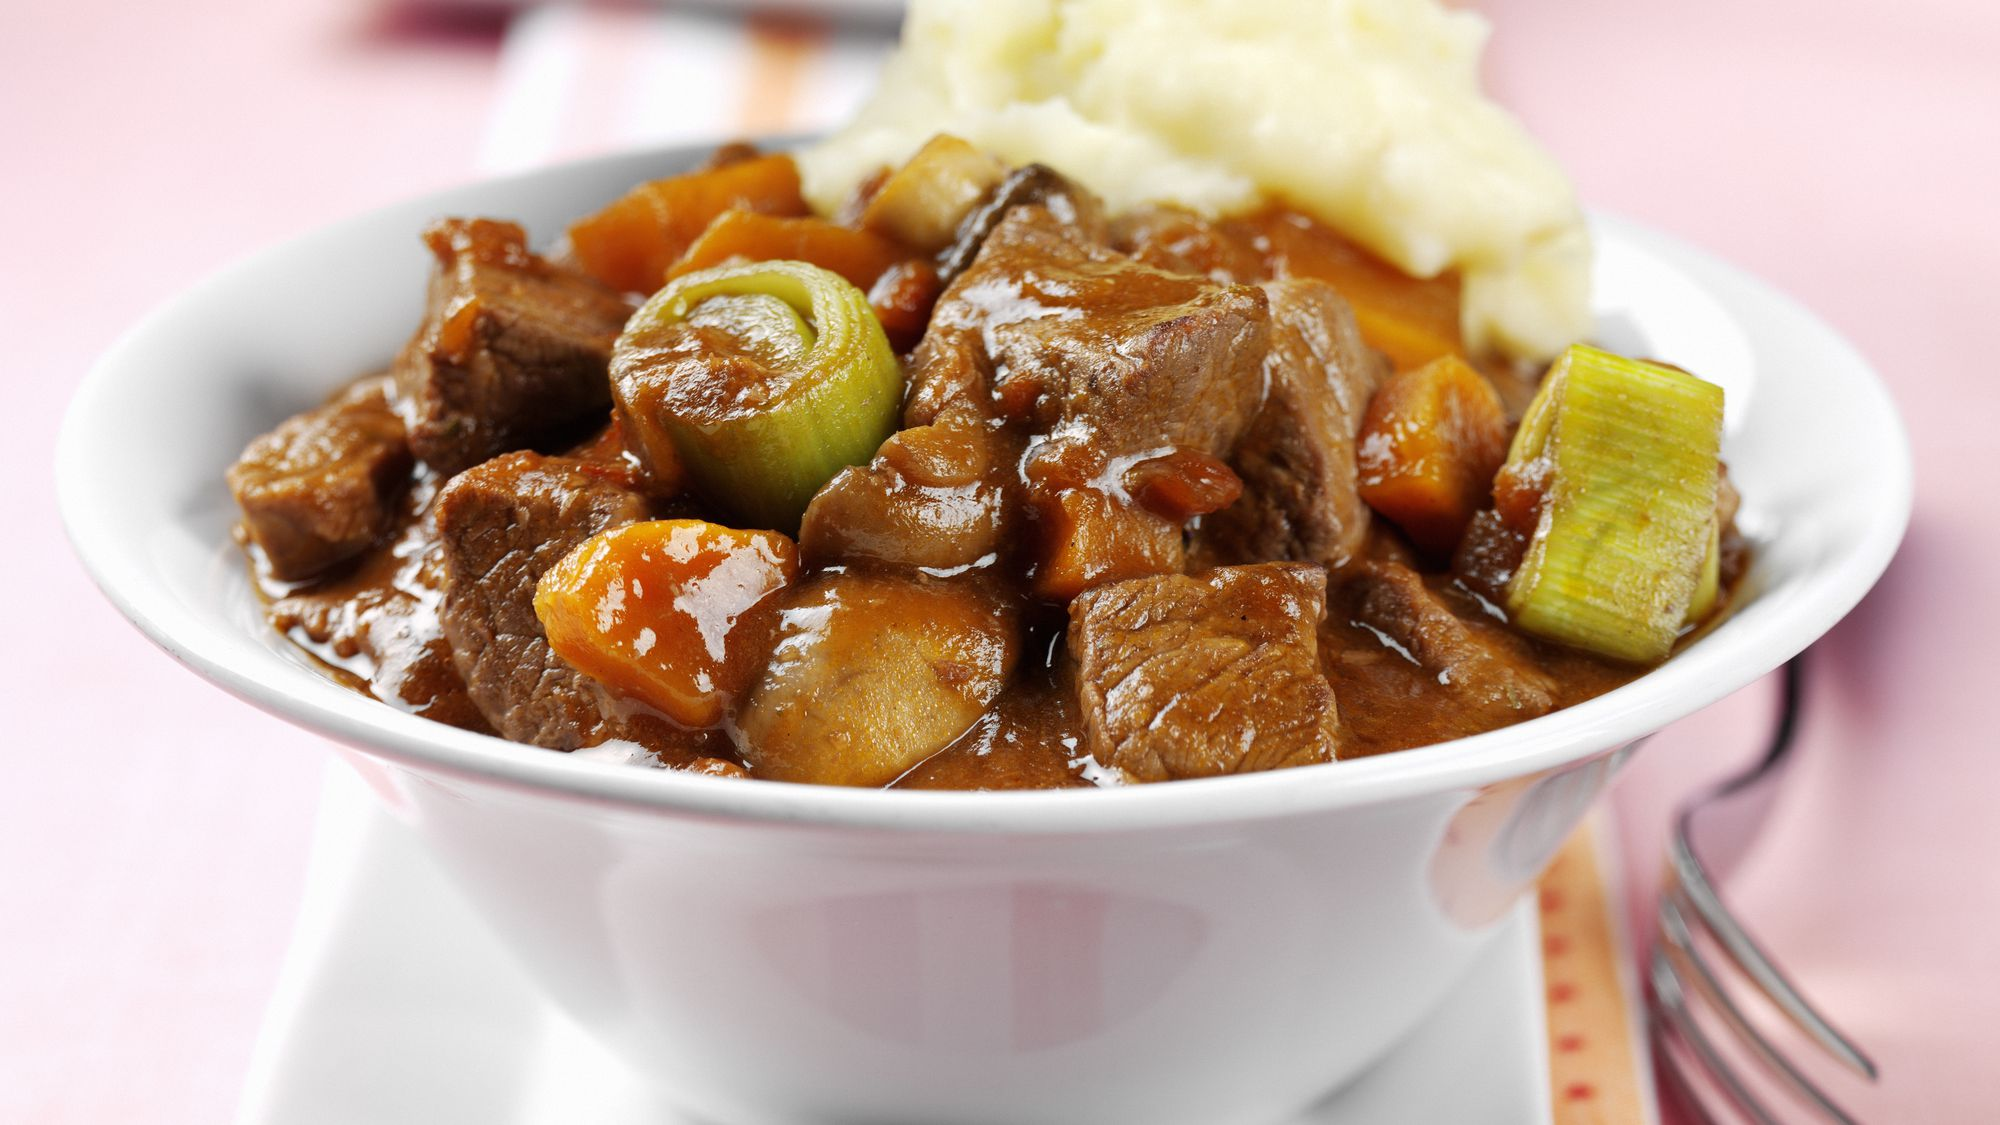 Easy Classic French Boeuf Bourguignon Recipe